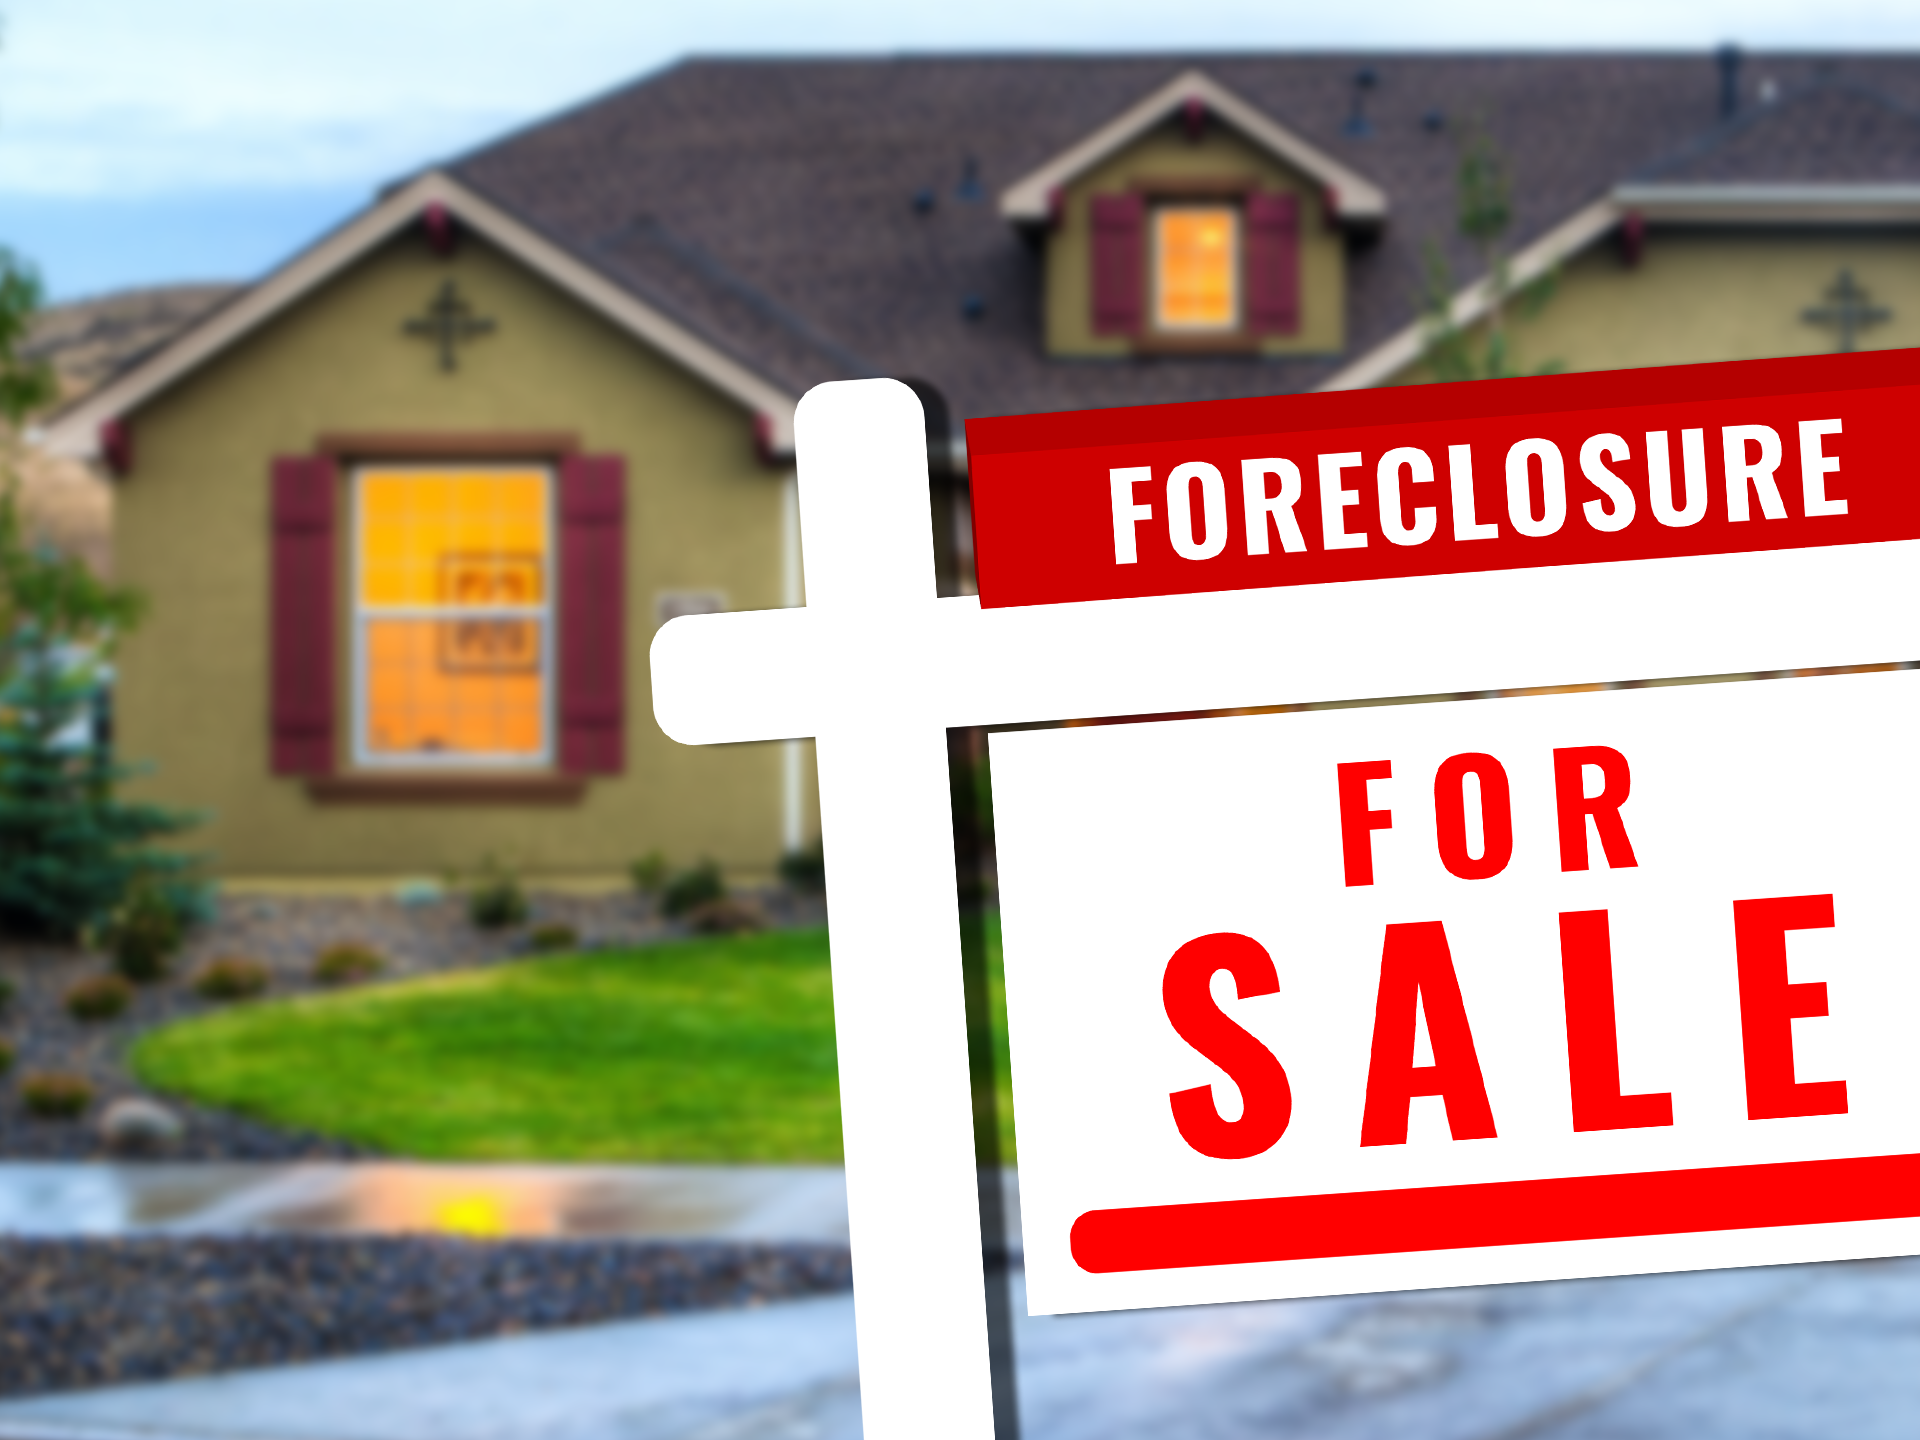 foreclosure attorney in naperville, foreclosure & short sale attorneys in naperville, naperville foreclosure lawyer